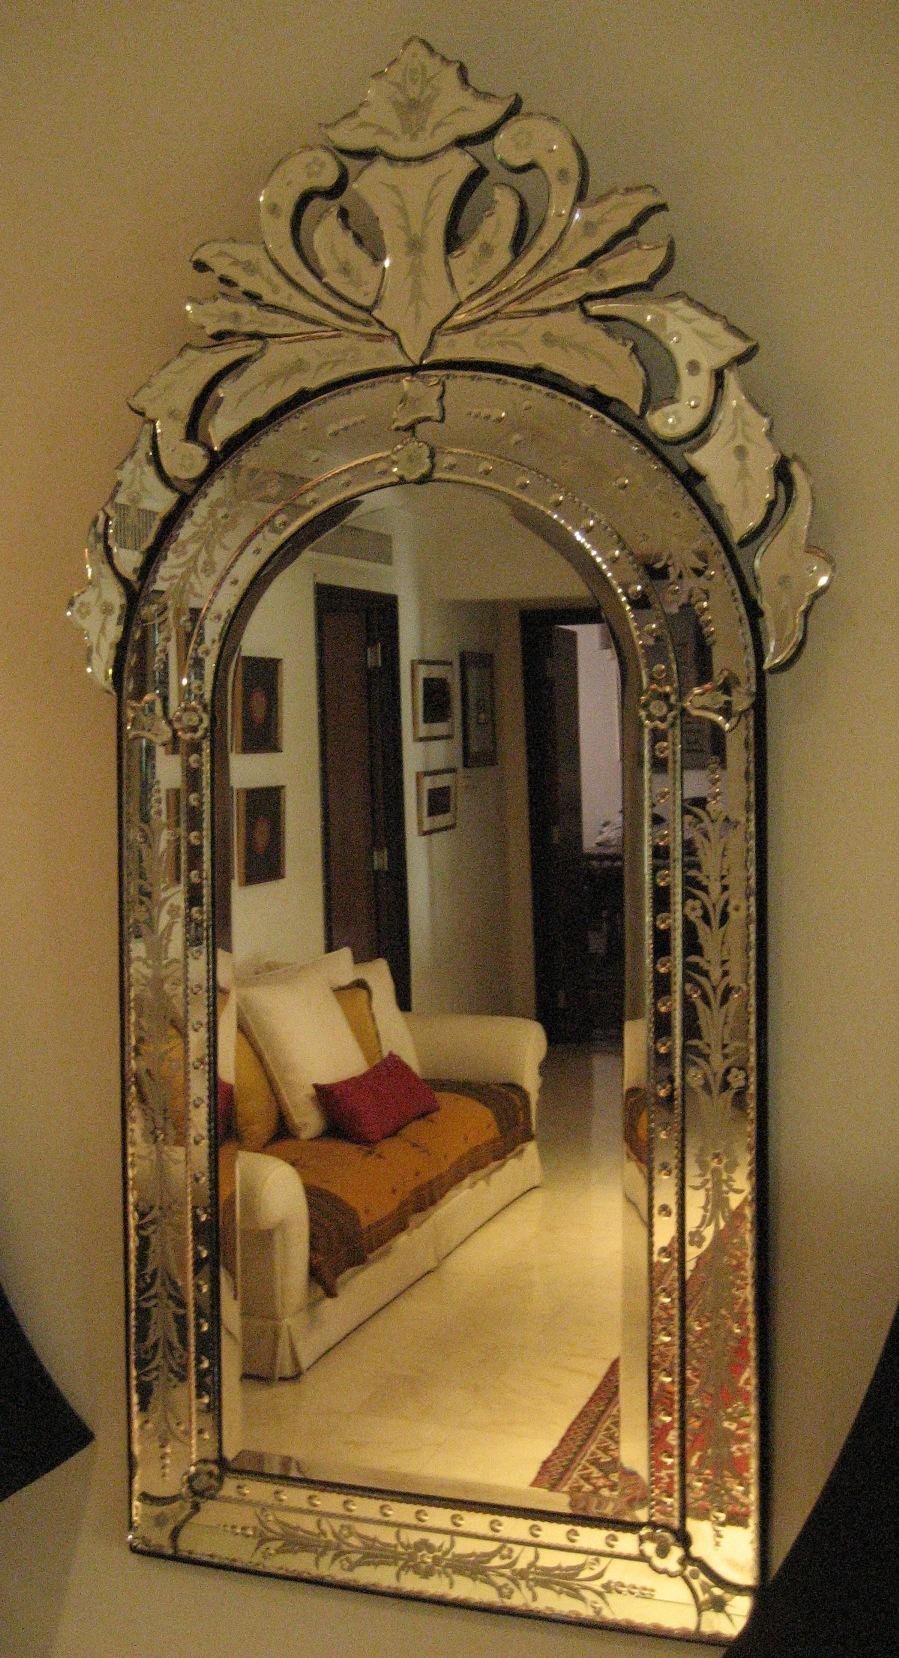 Venetian Mirrors | Home Decor & Furnishings Sale In Kuala Lumpur With Regard To Venetian Mirrors For Sale (View 2 of 20)